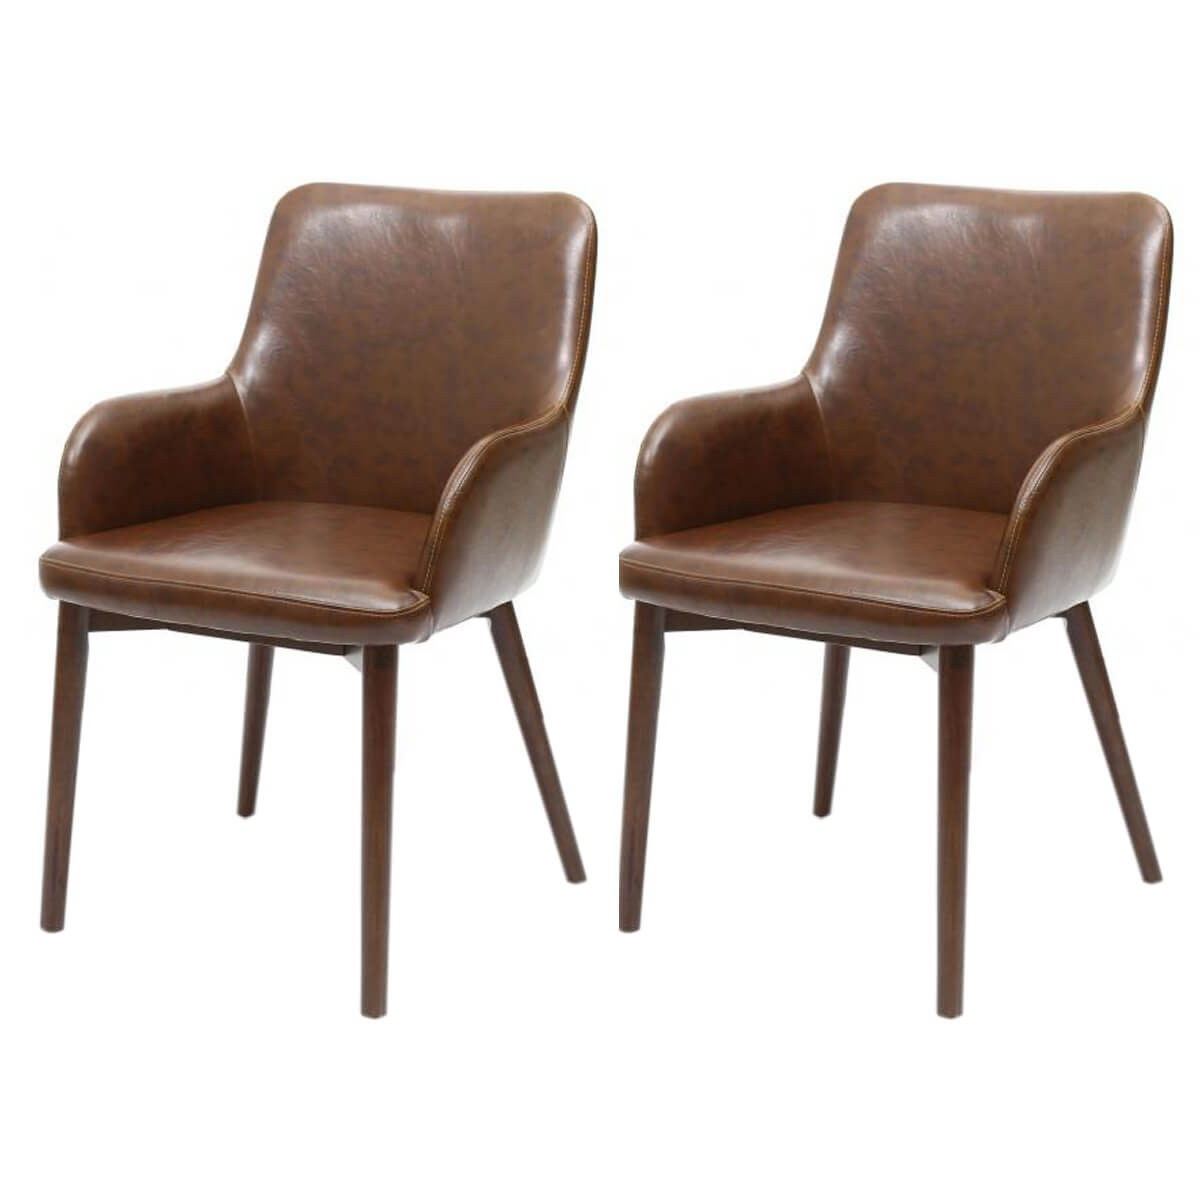 Best ideas about Leather Dining Chair . Save or Pin Sidcup Vintage Brown Leather Dining Chairs Now.